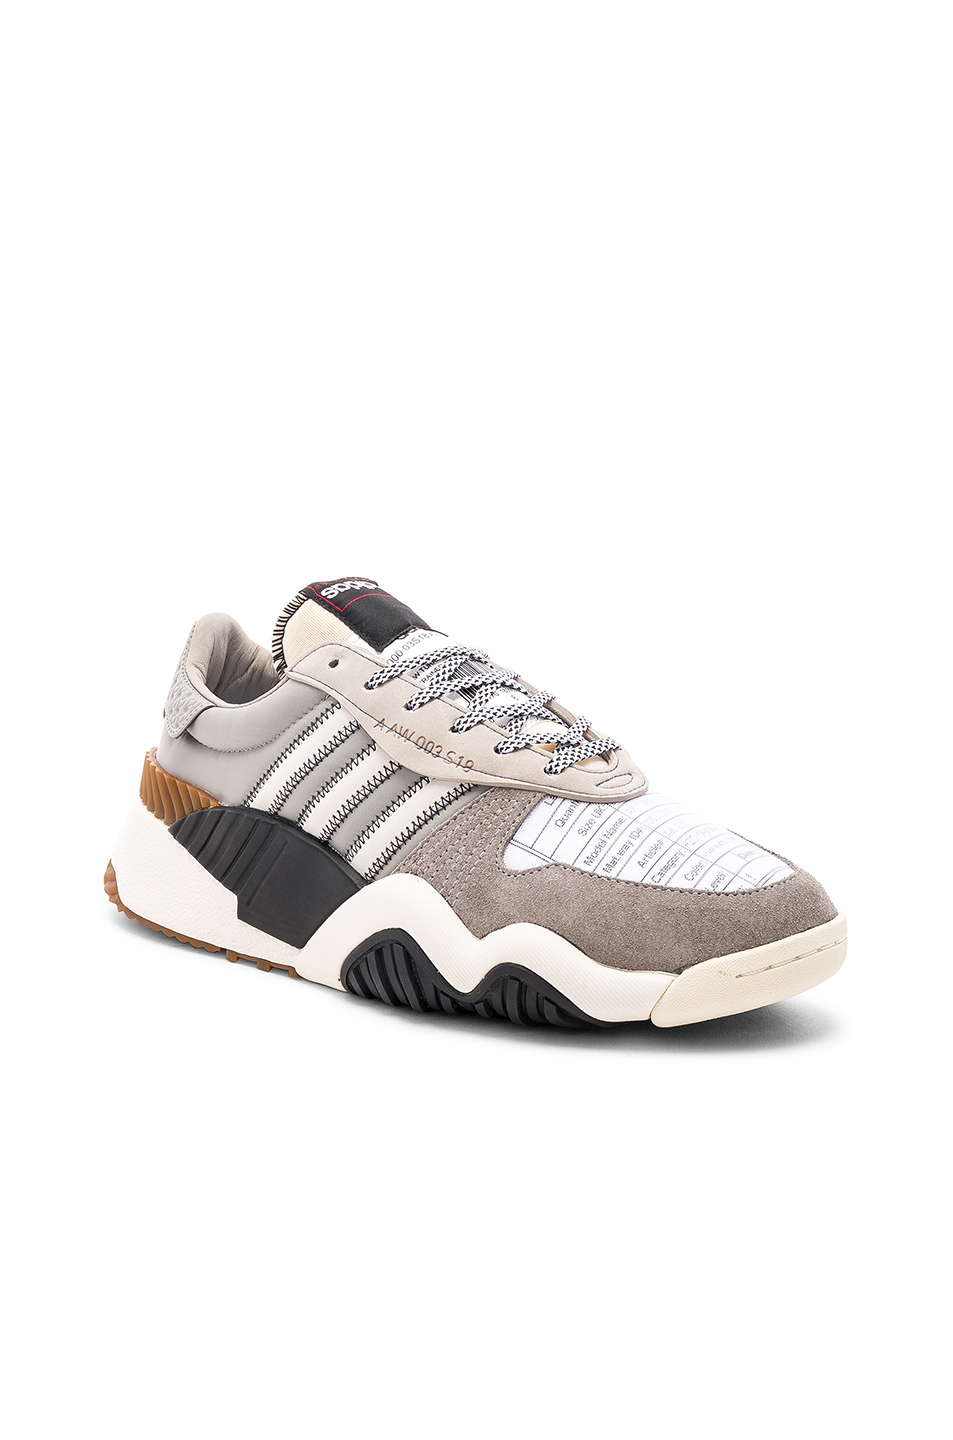 1d22bac147dda adidas by Alexander Wang Trainers  adidas by Alexander Wang Trainers ...